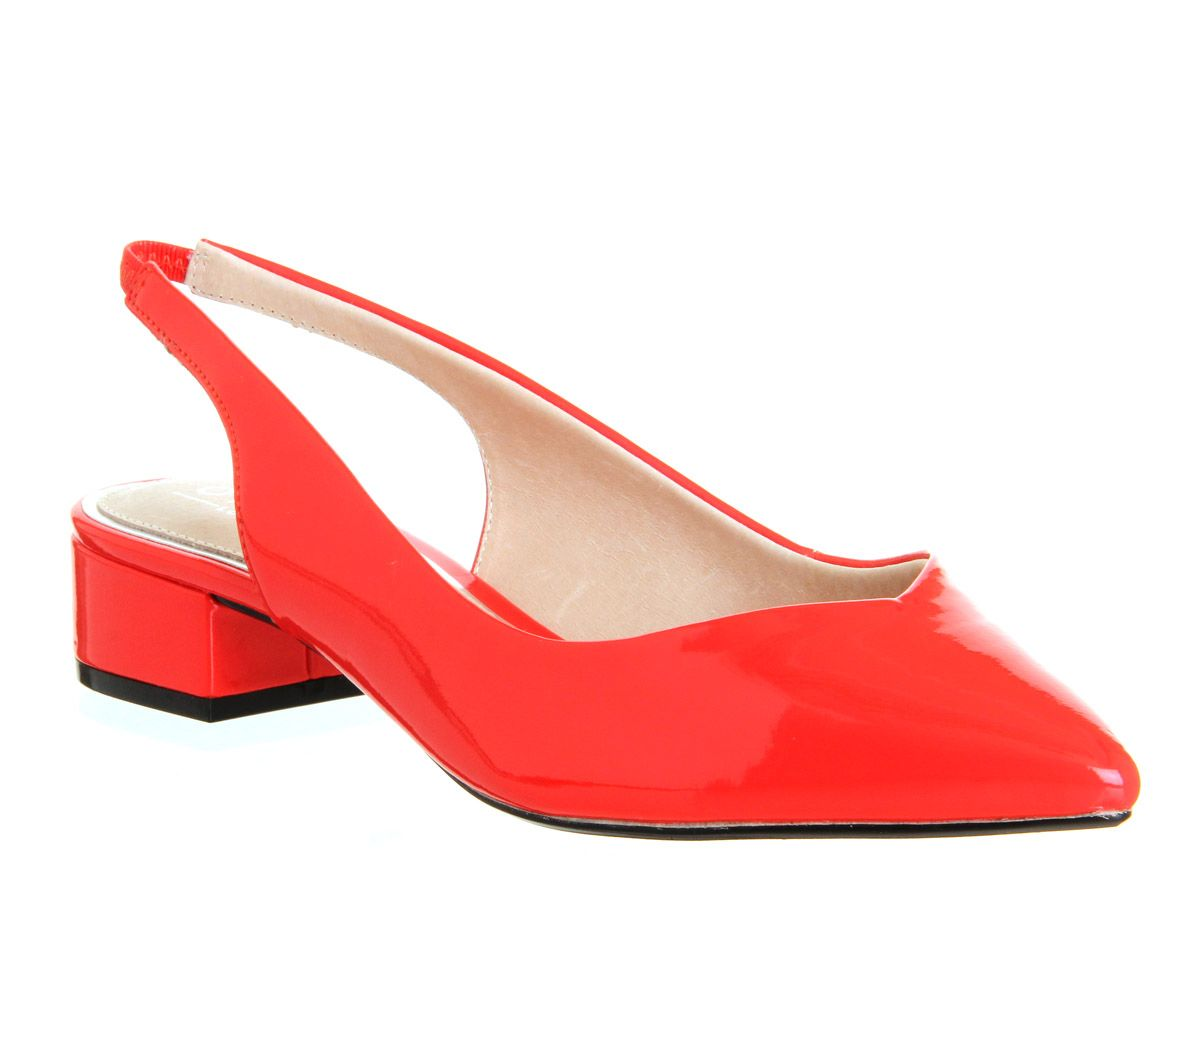 Dingo sling back pointed toe shoes